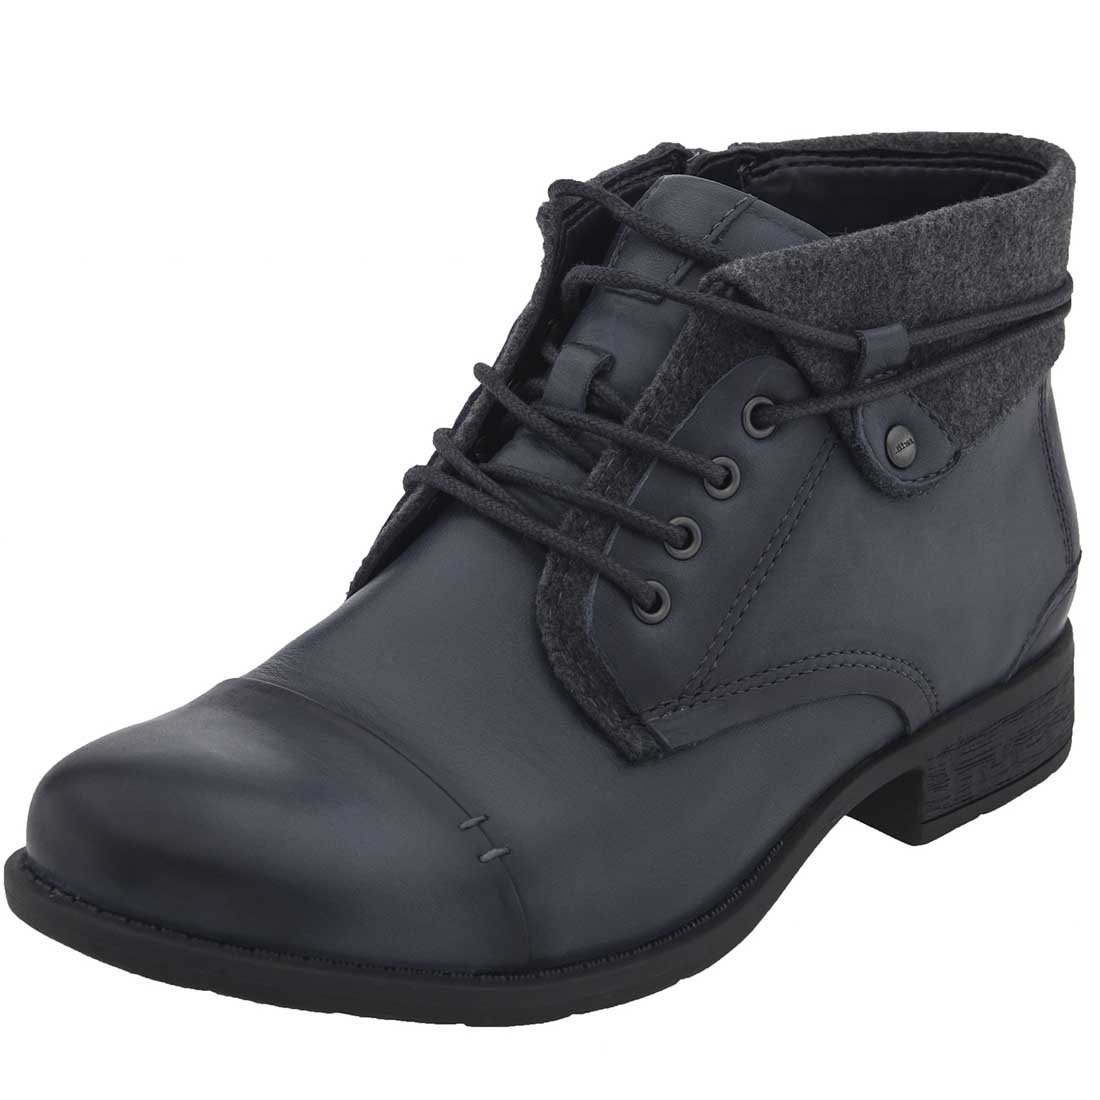 Earth Women's Rexford Ankle US|Admiral Boot B06X91ZR6V 7 B(M) US|Admiral Ankle Blue Full Grain Leather 4e1493